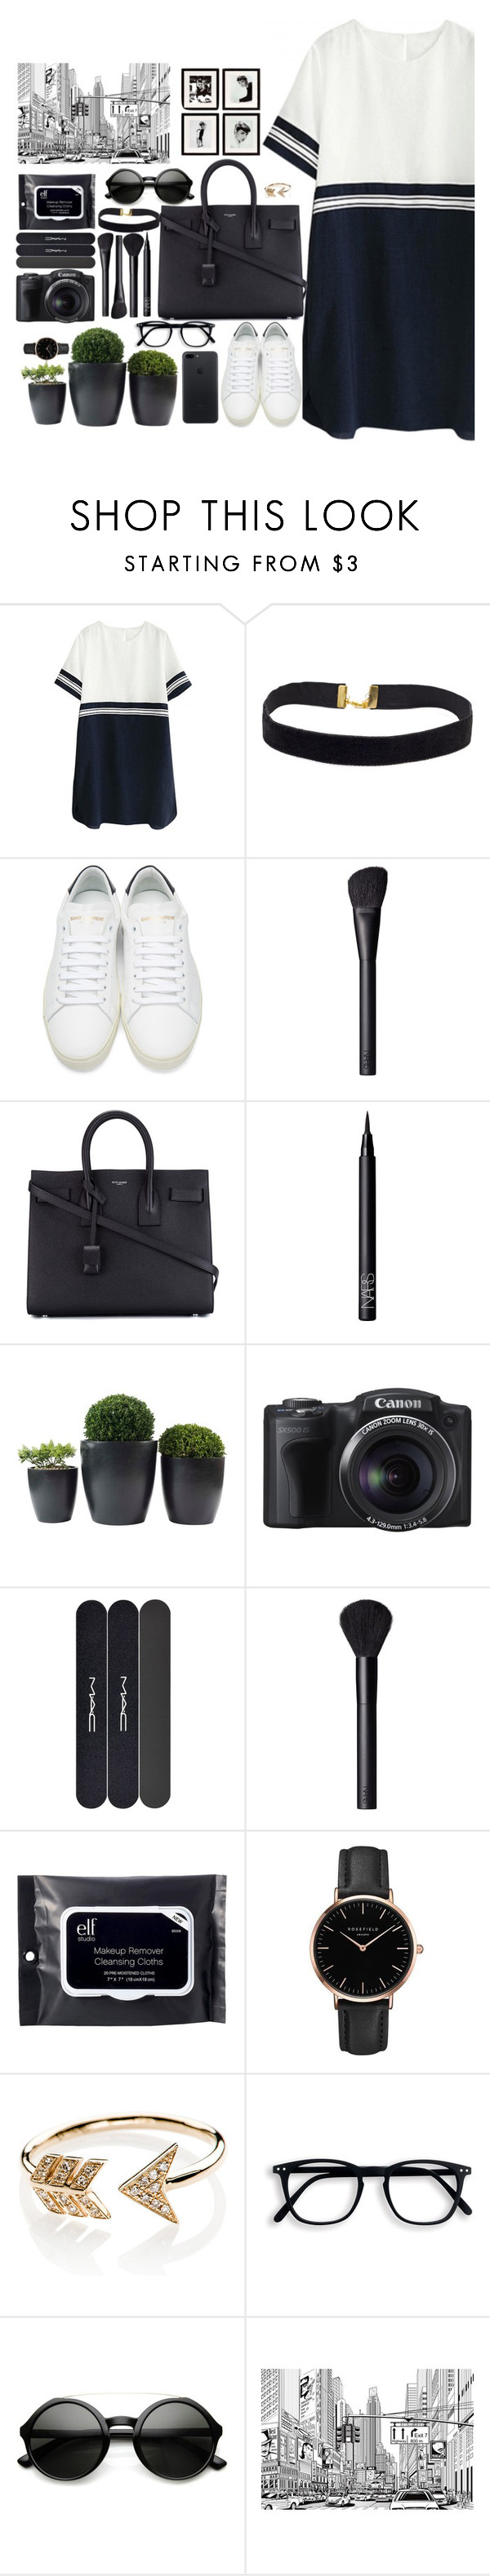 """""""Untitled #131"""" by maggie1314 ❤ liked on Polyvore featuring Yves Saint Laurent, NARS Cosmetics, MAC Cosmetics, e.l.f., Topshop, EF Collection, ZeroUV and Eichholtz"""